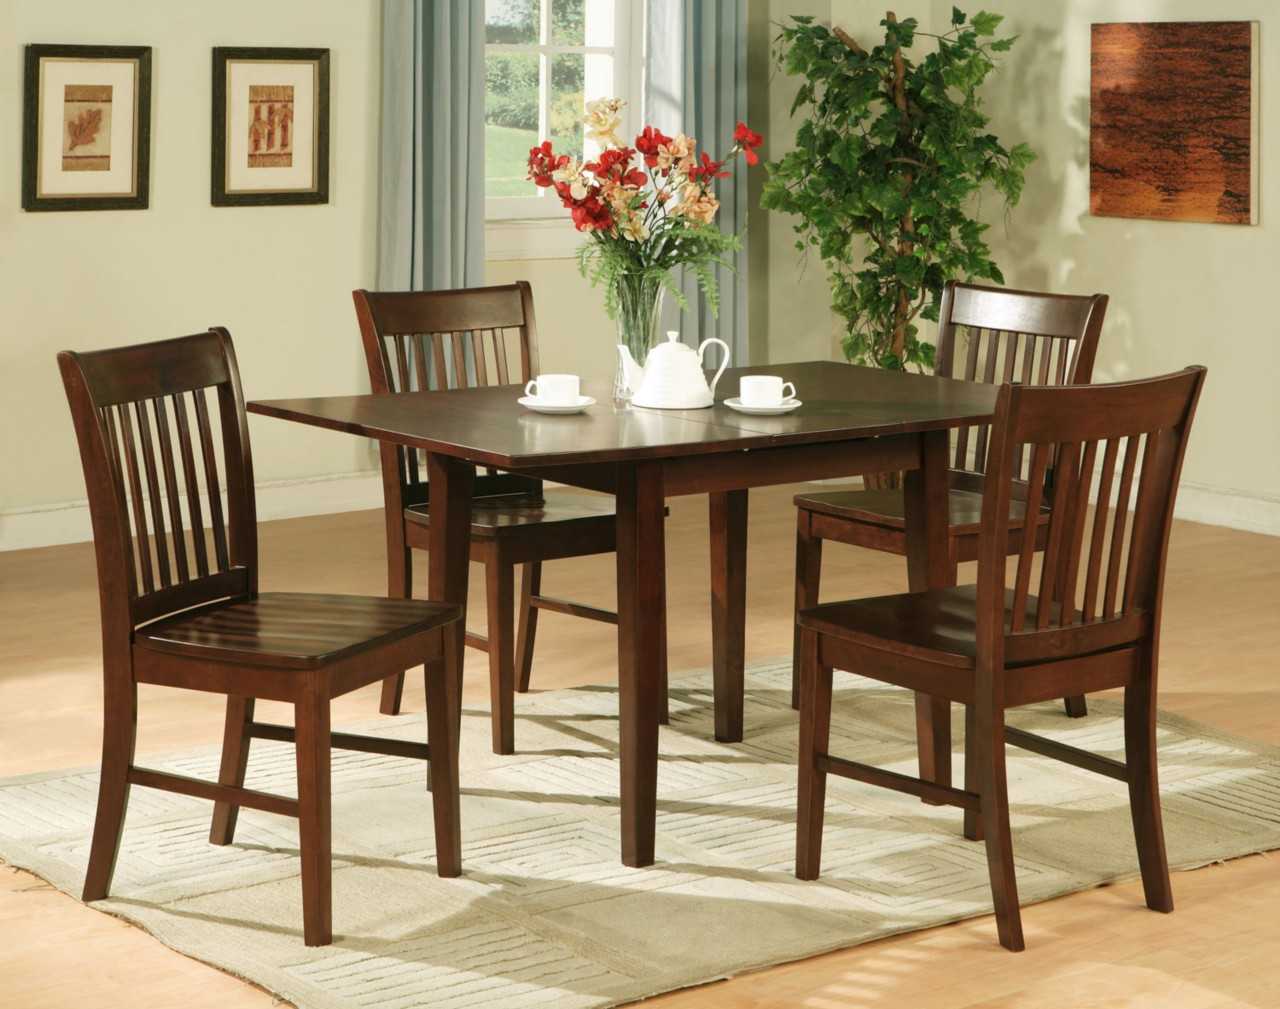 5pc rectangular kitchen dinette table 4 chairs mahogany ebay for Kitchen set table and chairs